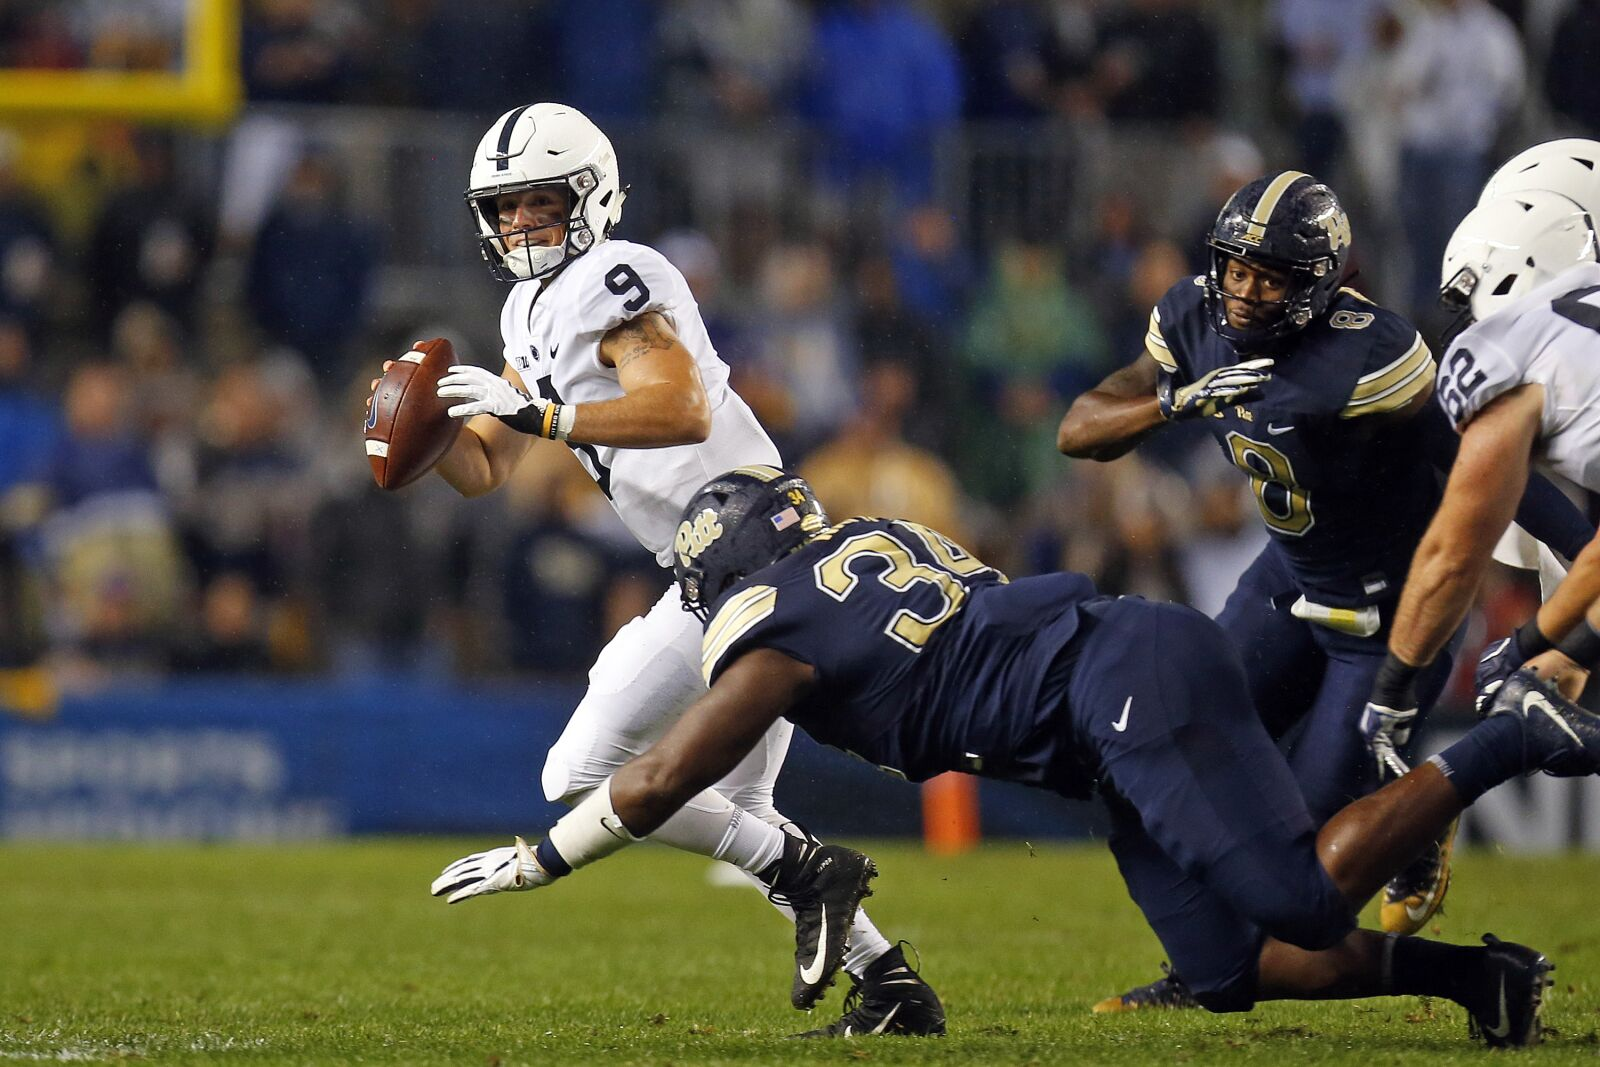 Penn State Football: The talk of multiple spots is real for Trace McSorley